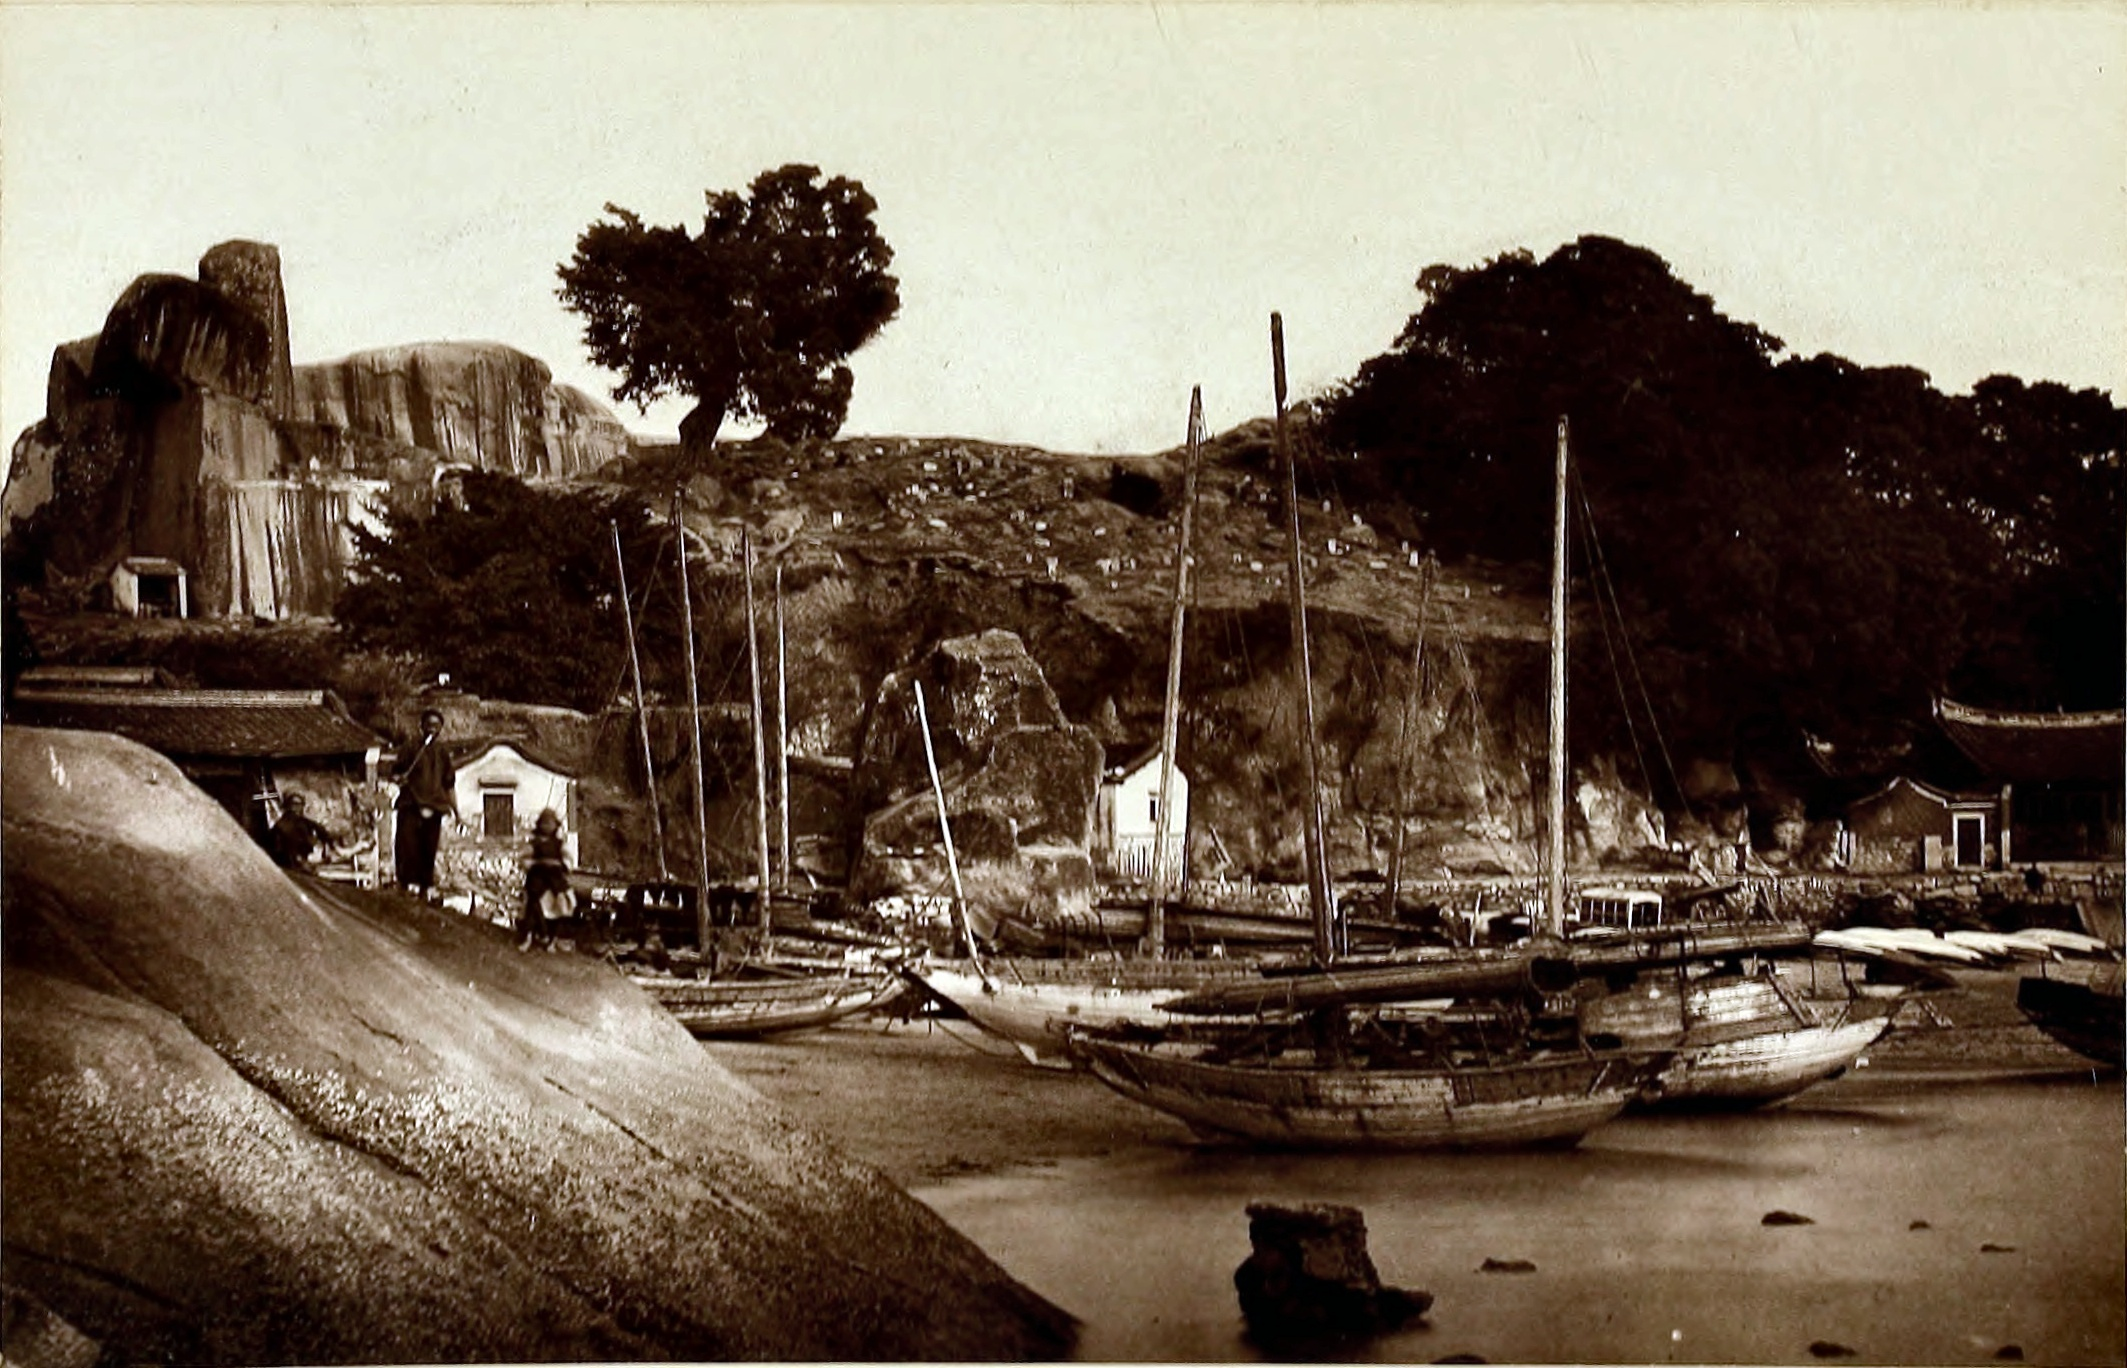 Xiamen Harbor, China about 1870 by John Thomson (1837 – 1921) Scottish photographer